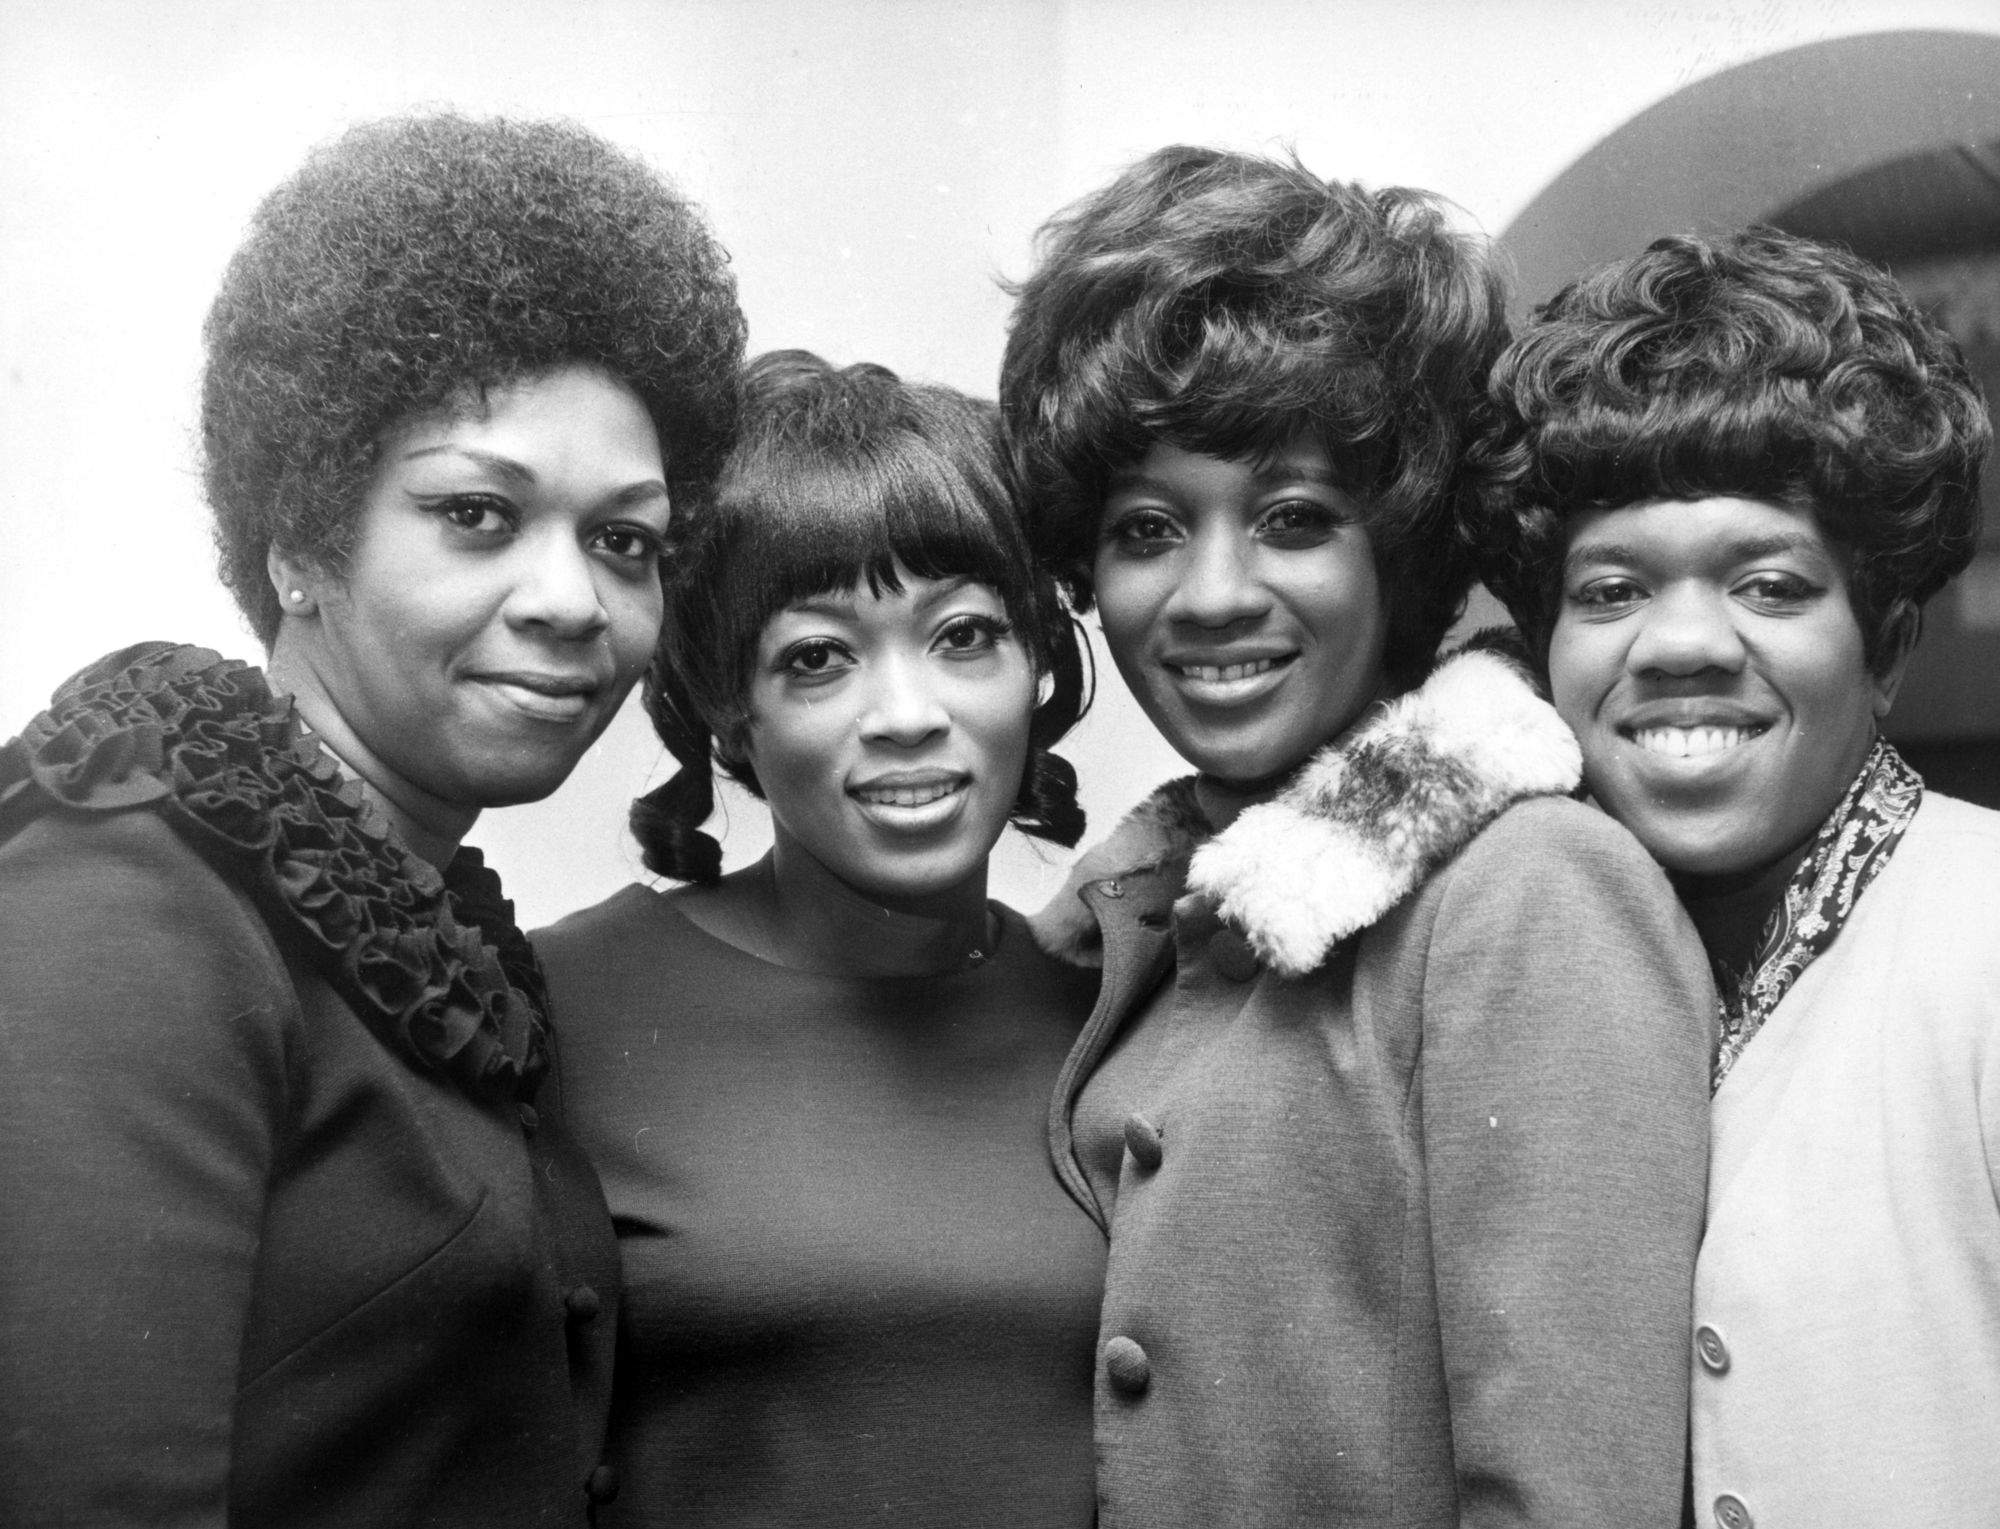 The Sweet Inspirations band (from left to right): Cissy Houston (Whitney Houston's mother),  Myrna Smith, Sylvia Shemwell and Estelle Brown, 1968.